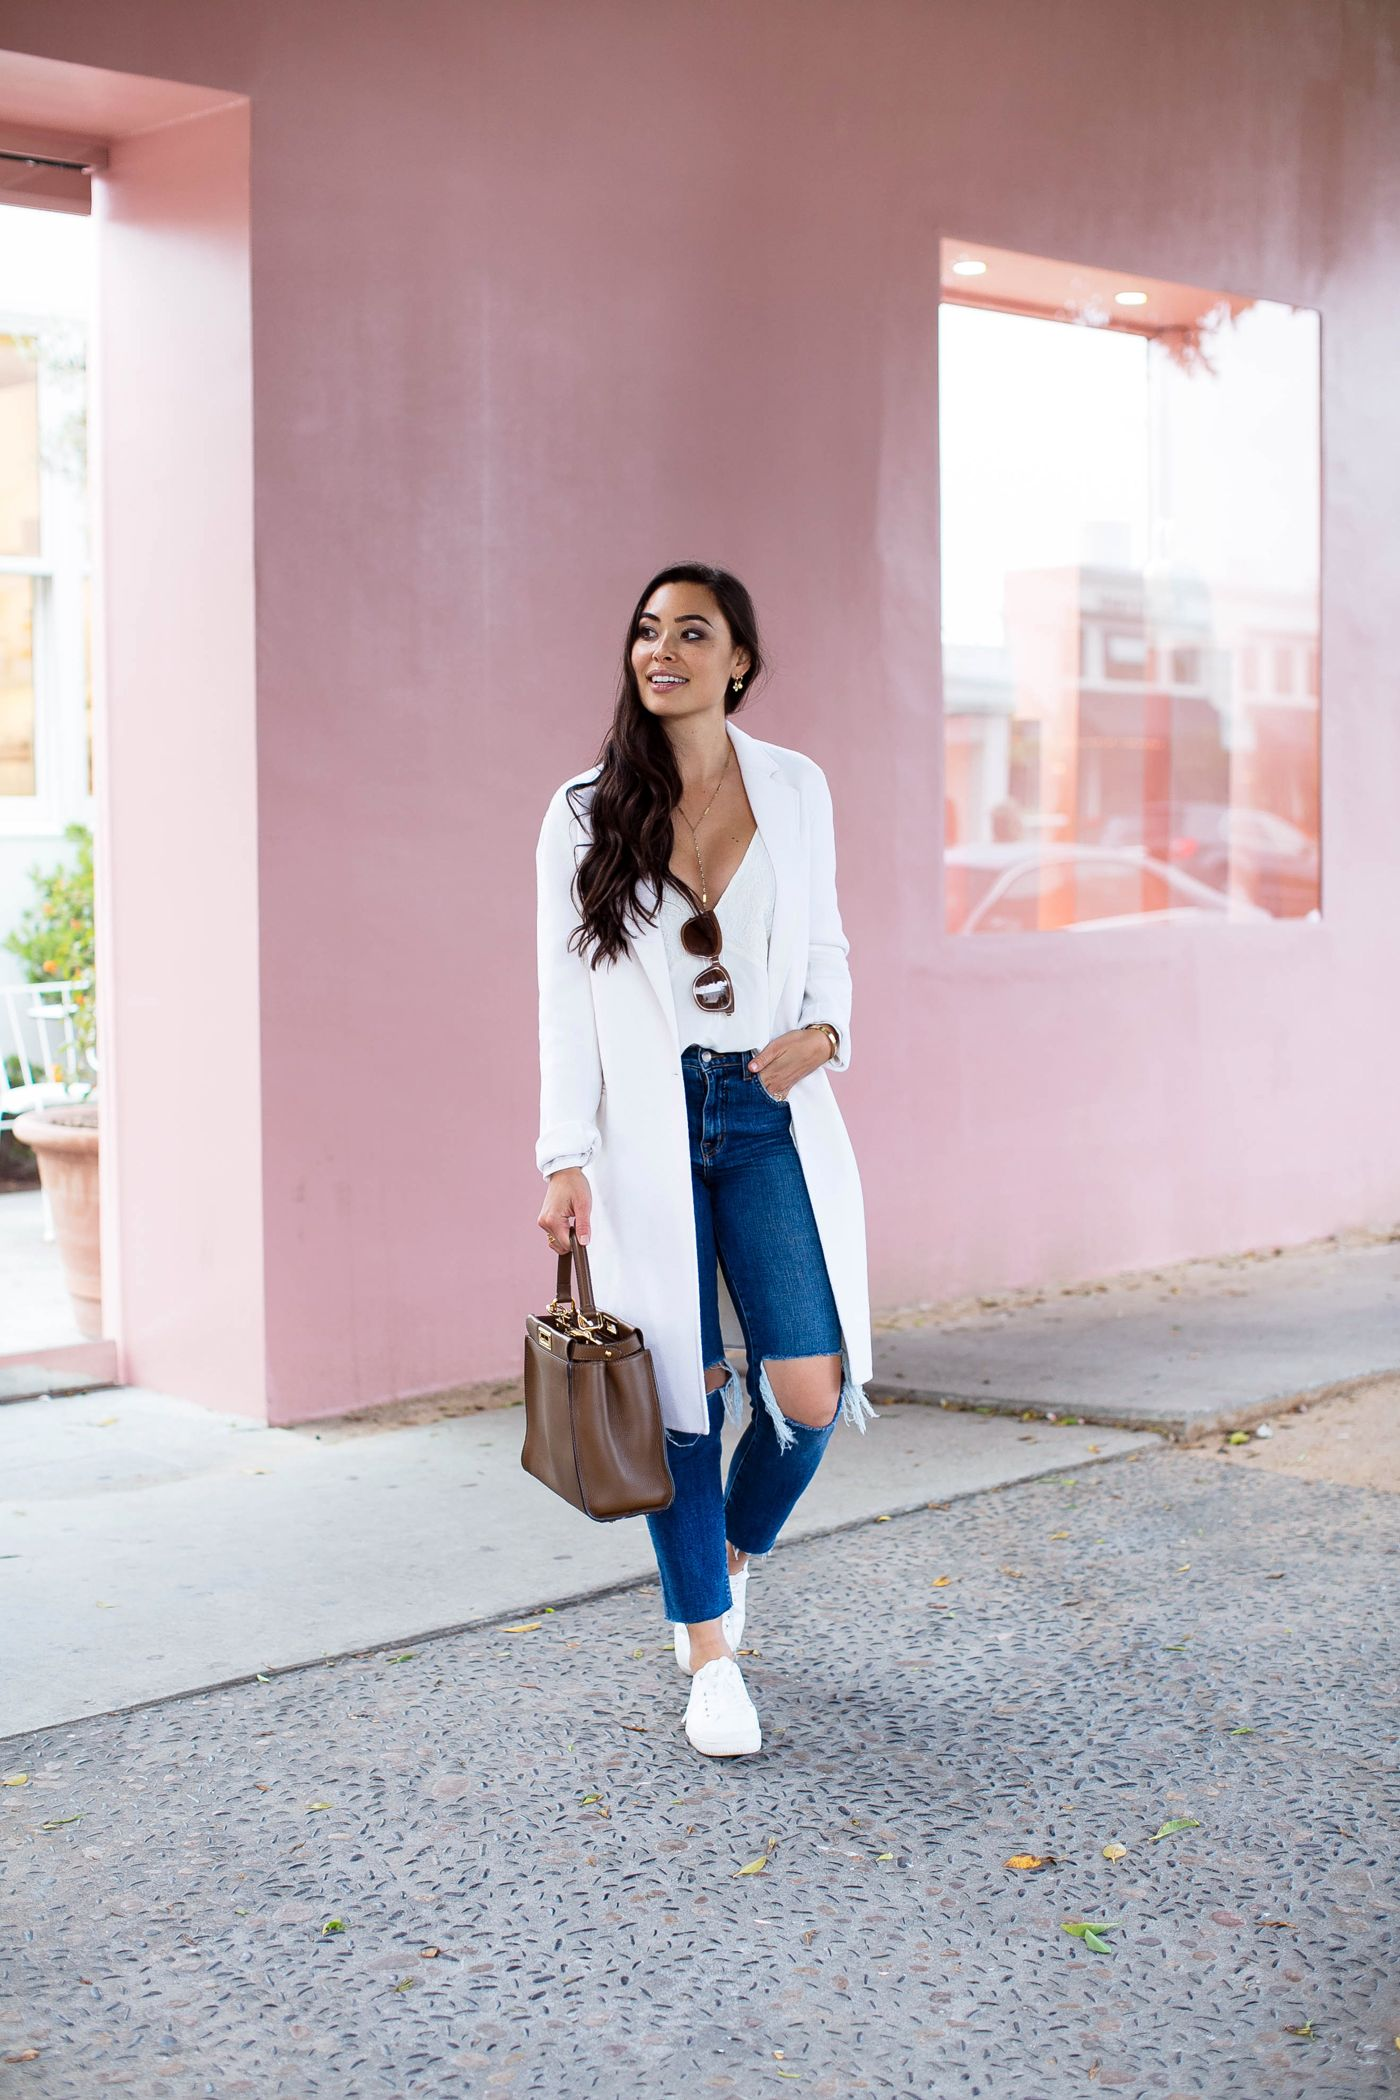 Spring Travel Style: The Perfect Spring Outfit For Traveling